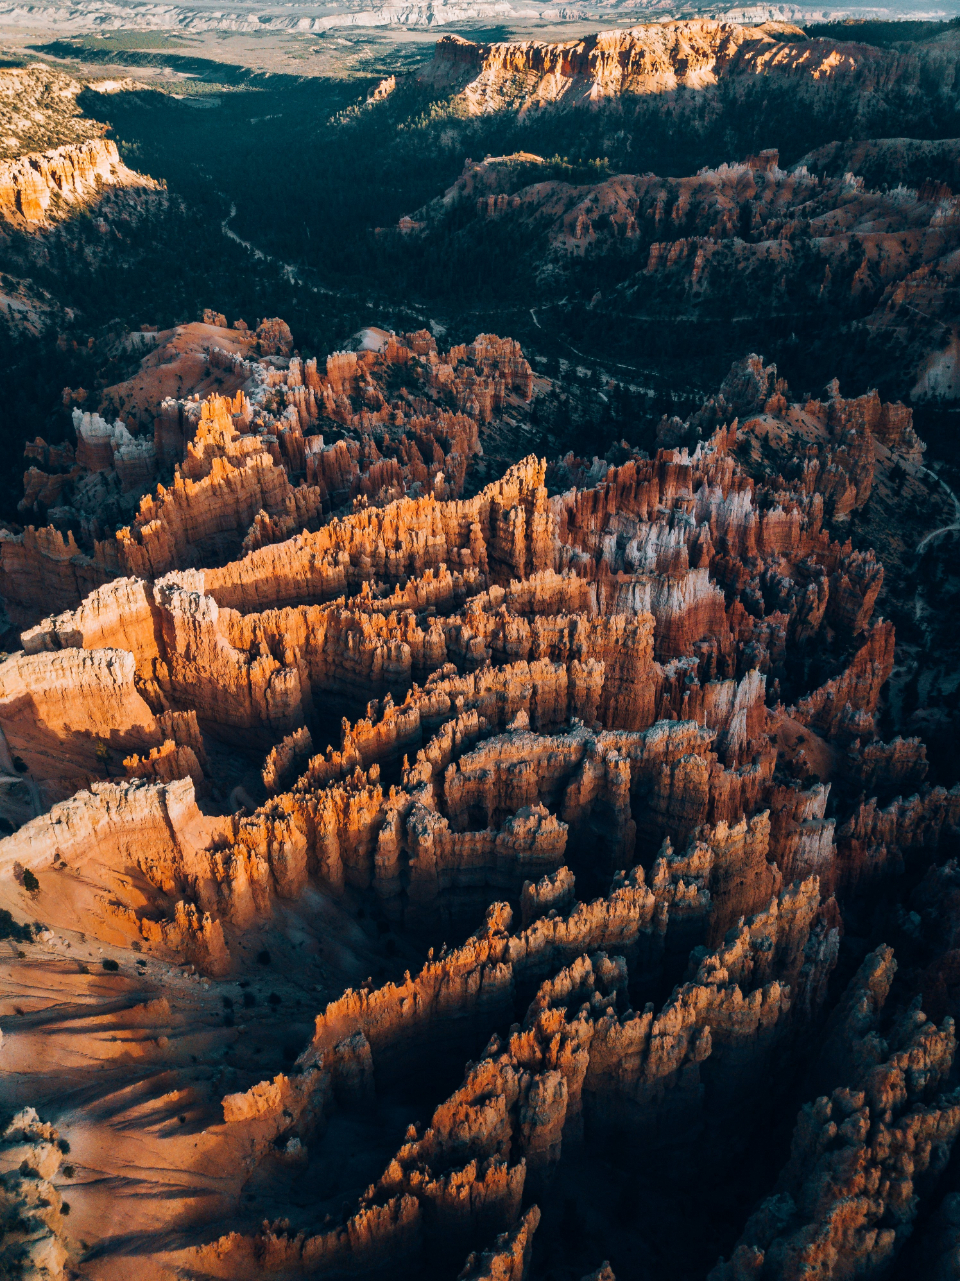 aerial canyon sunrise rocks landscape nature outdoors adventure drone above terrain rural sunlight dry hot mountains